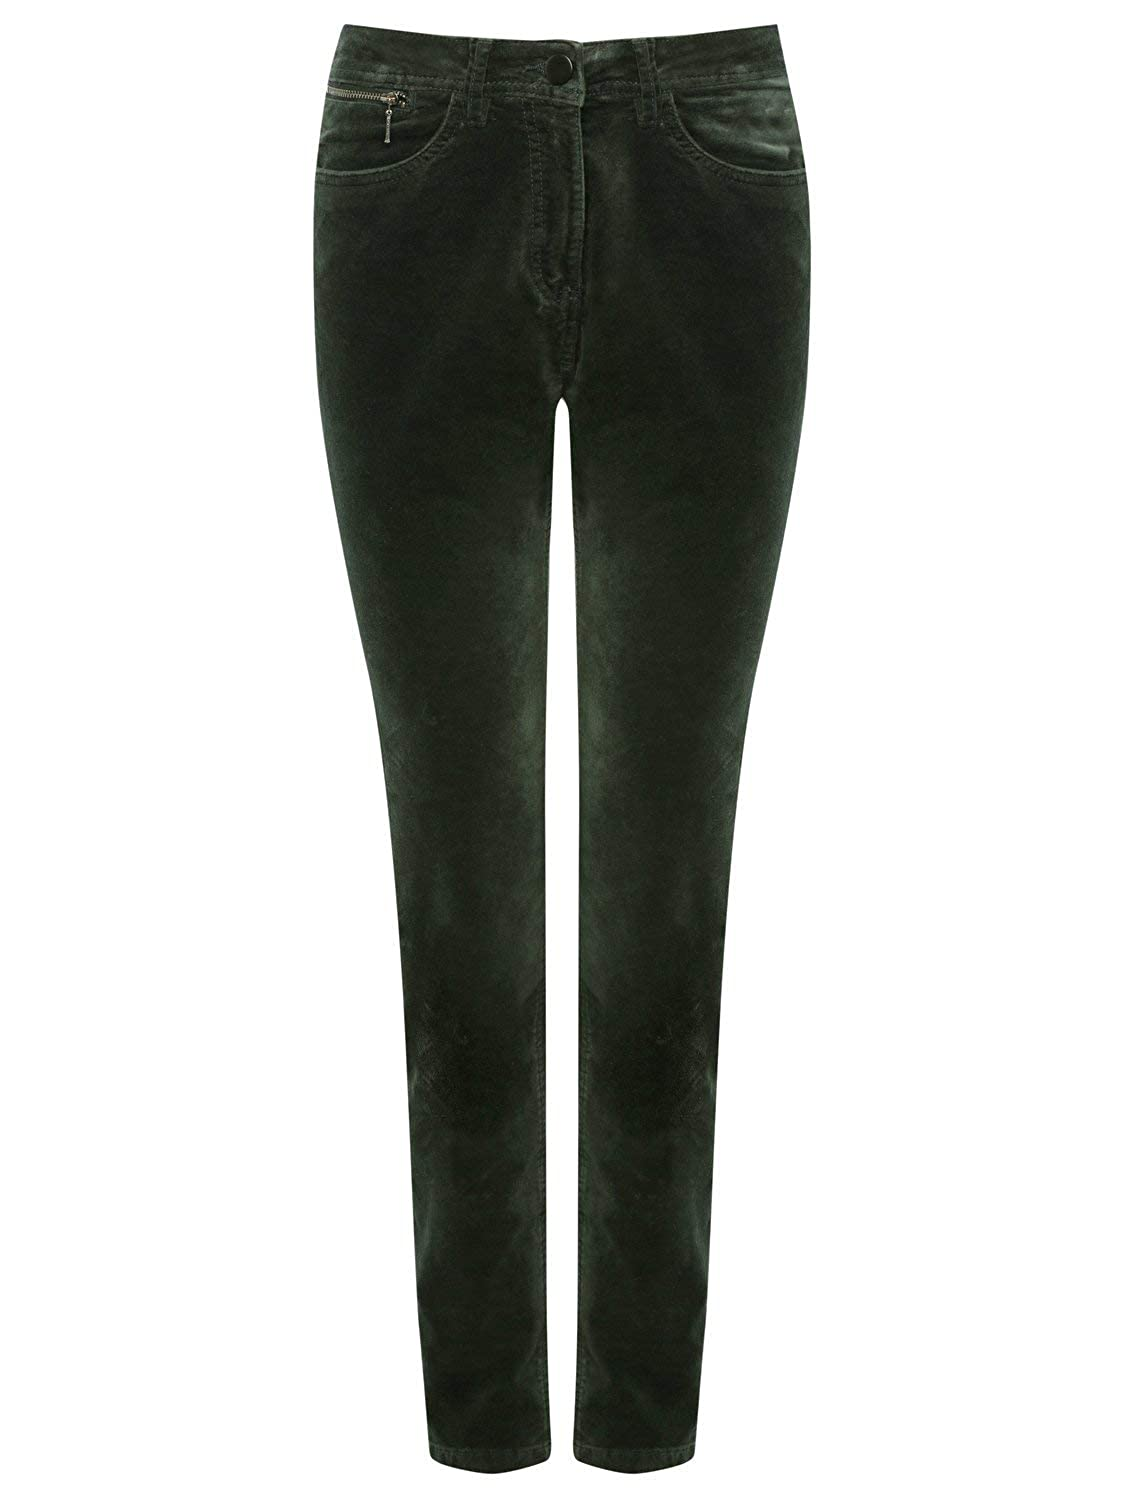 M&Co Ladies Full Length Slim Fit Velveteen Trousers